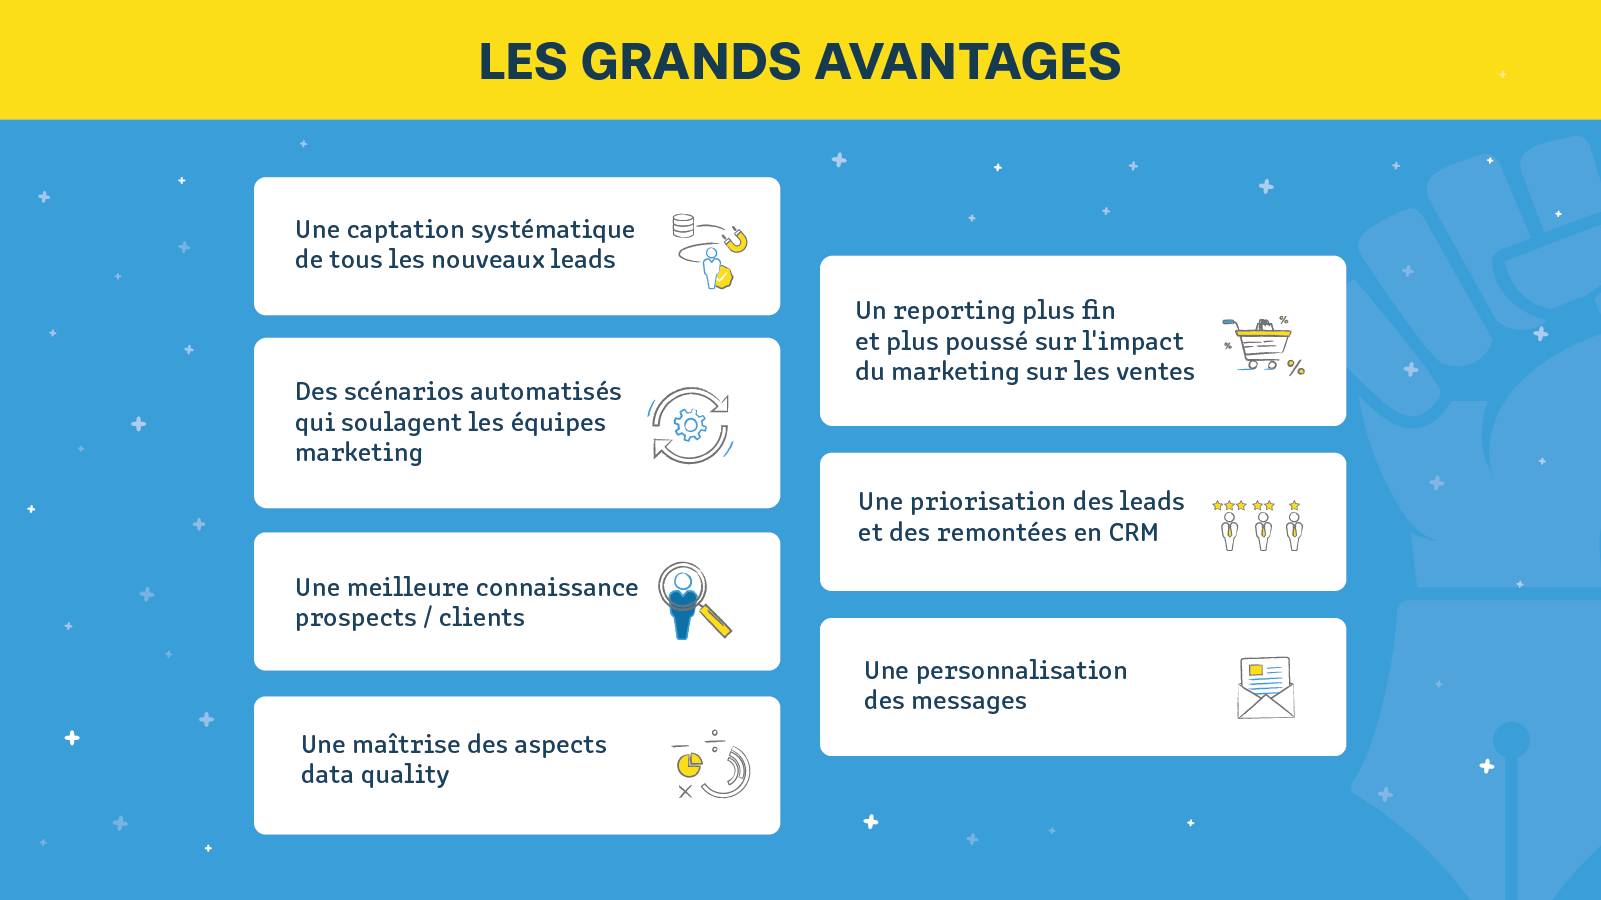 Les grands avantages du marketing automation